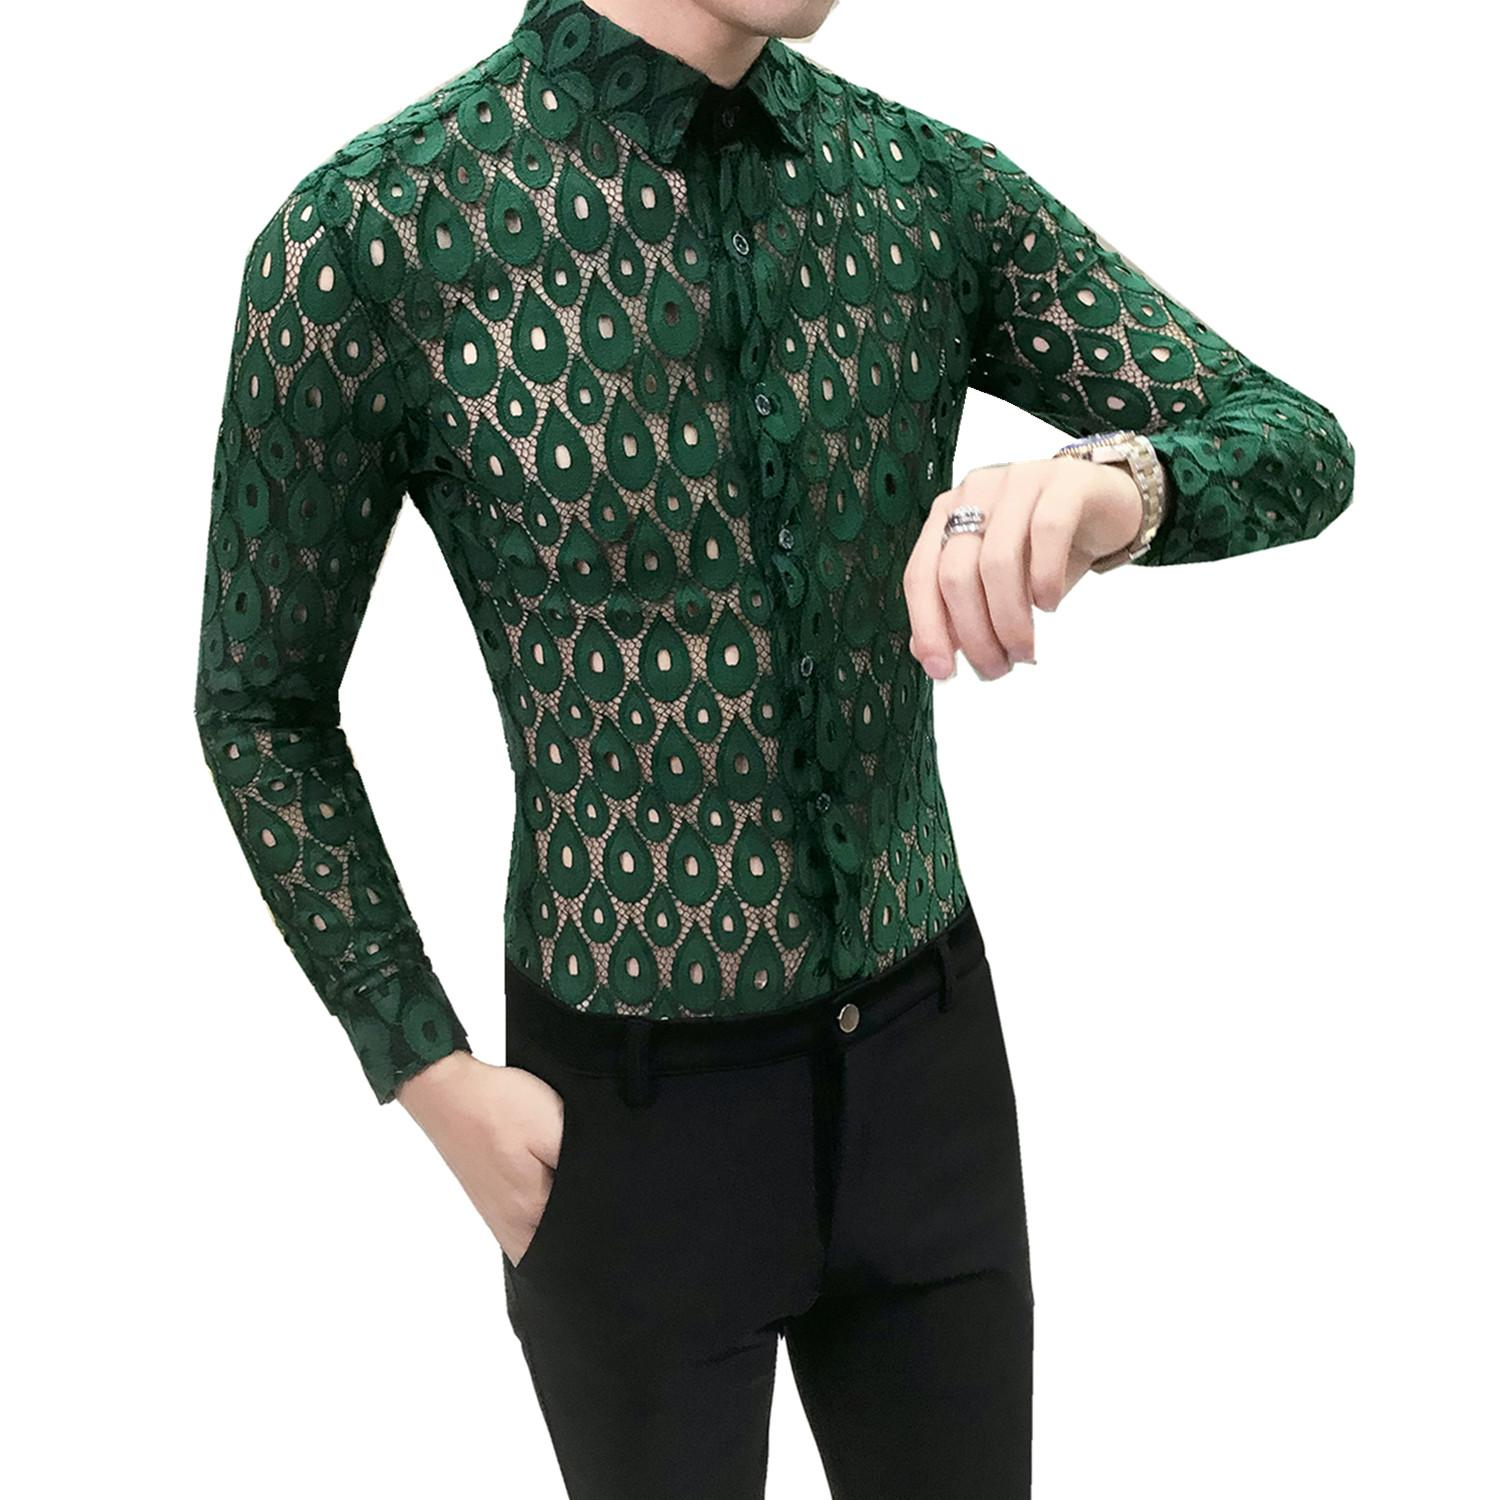 Mens Long Sleeve See Through Lace Shirts Clubwear Sexy Sheer Tops